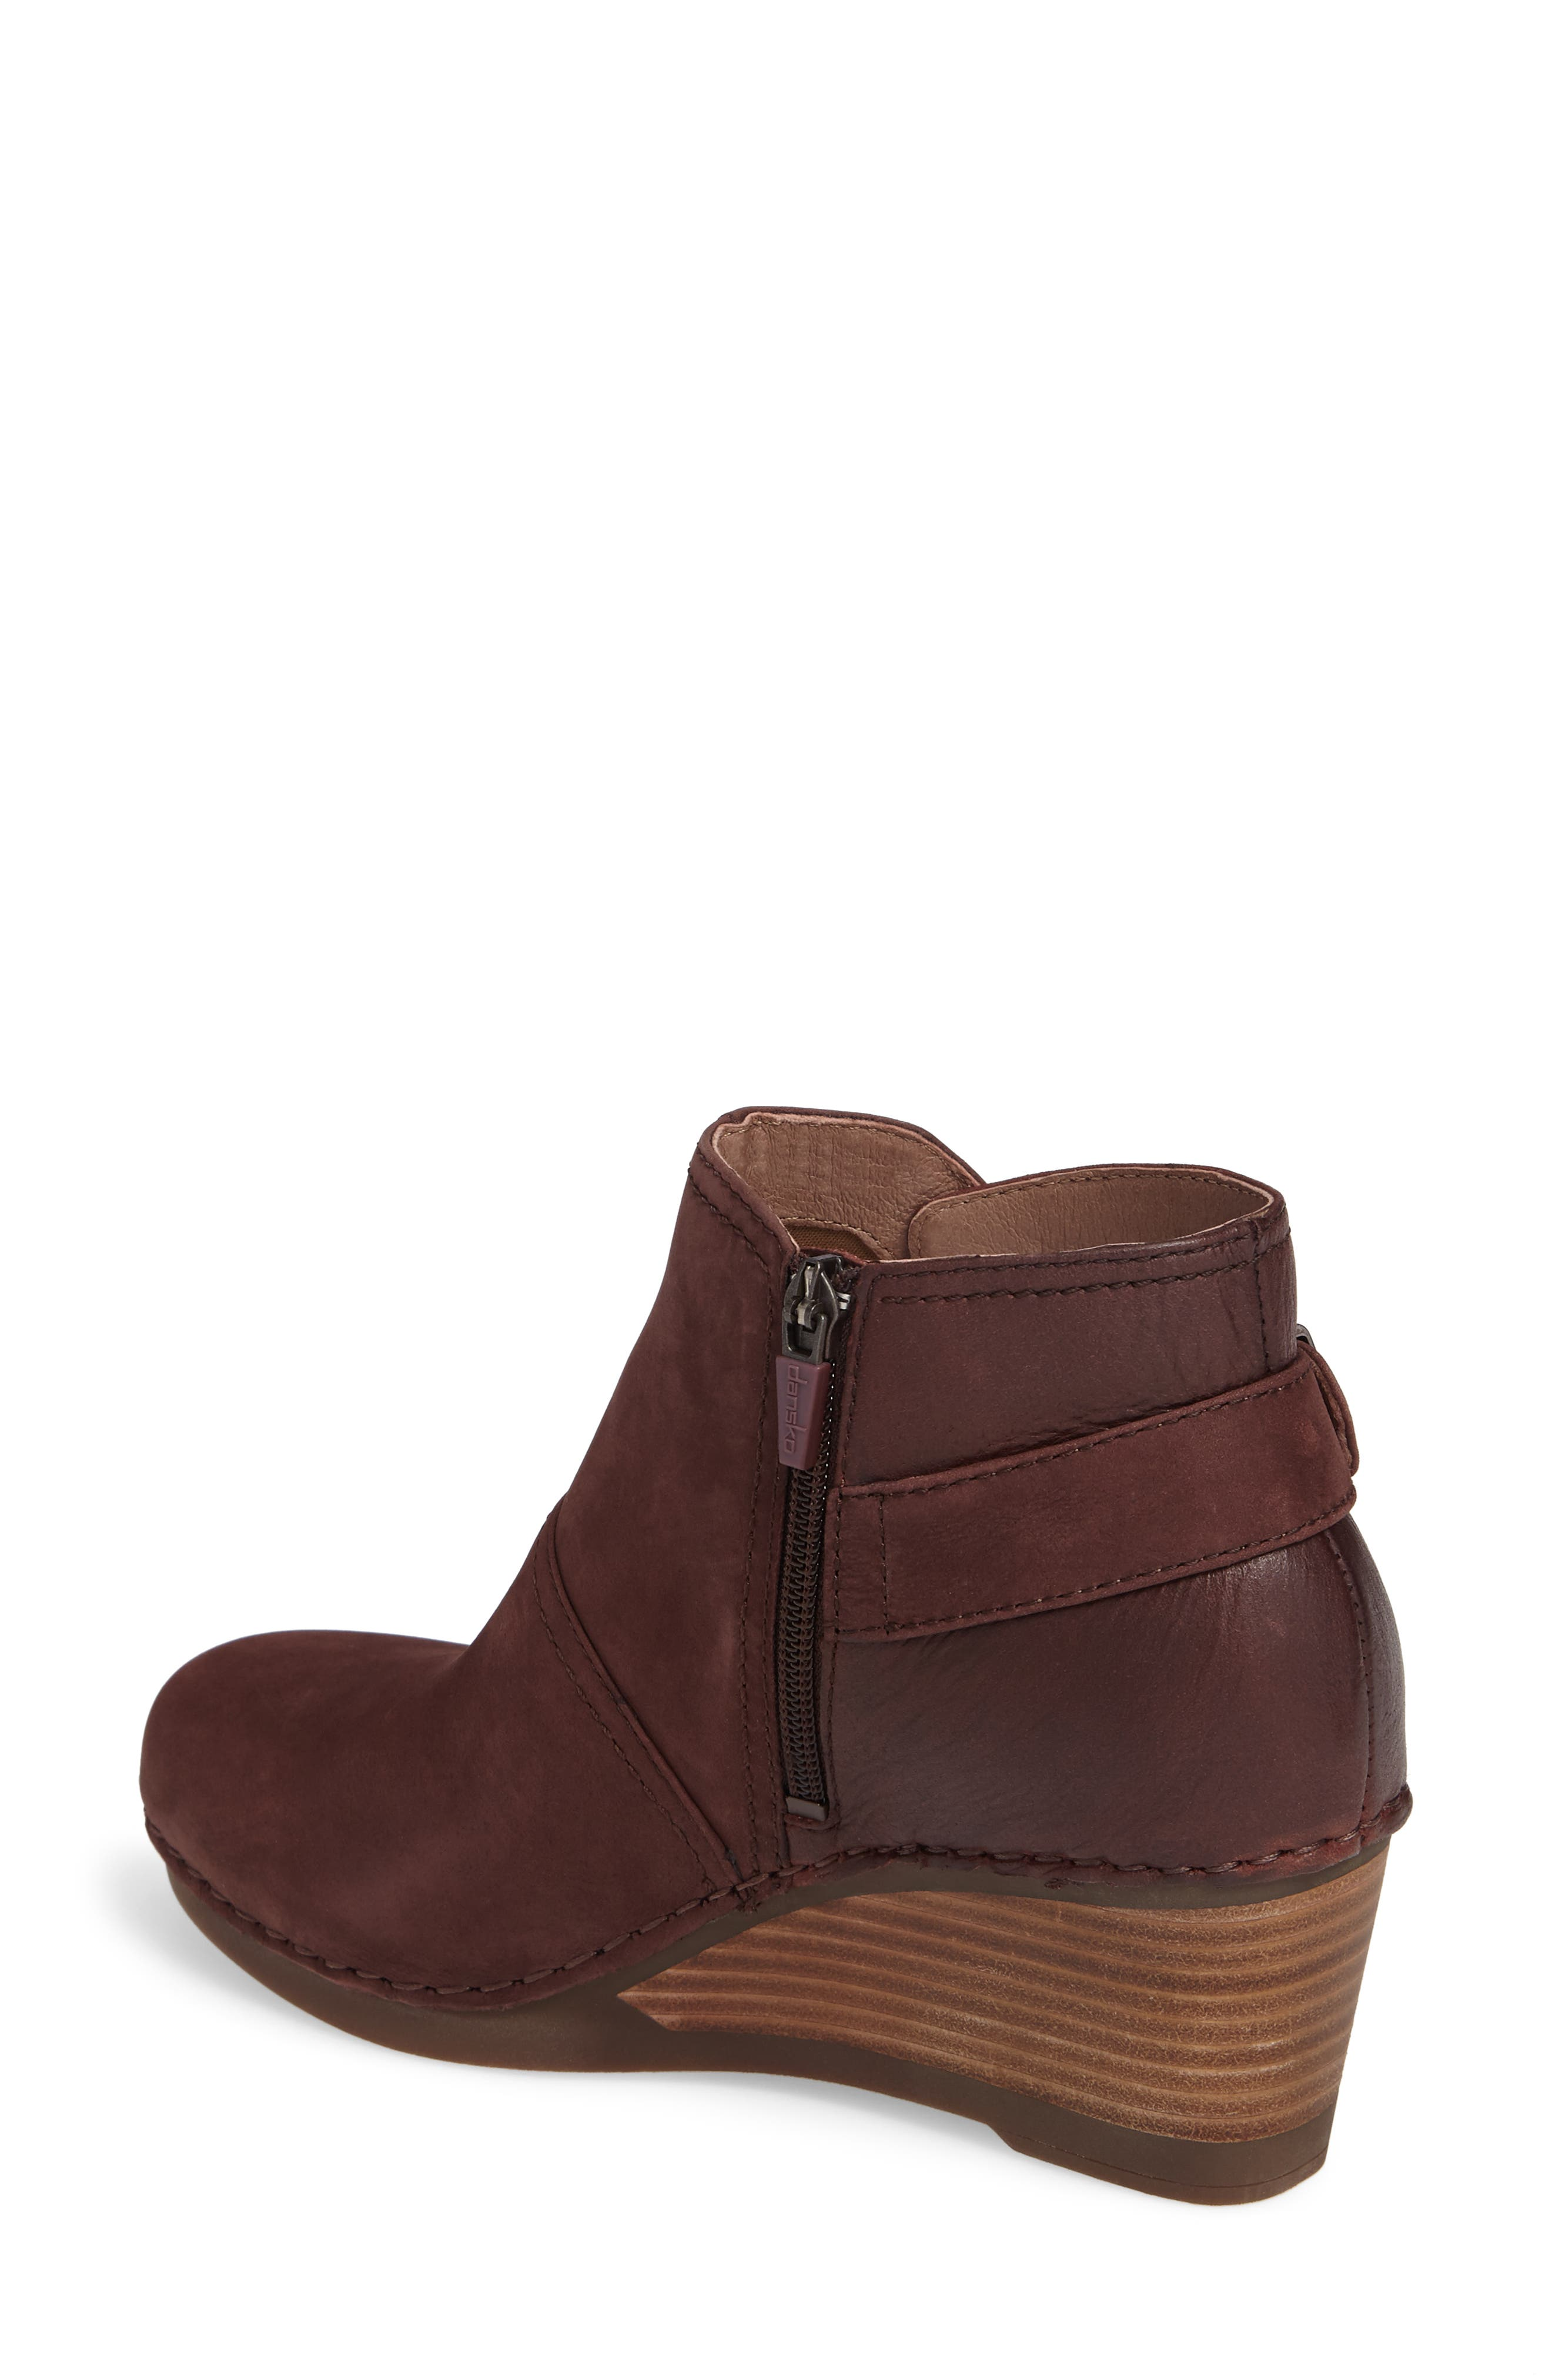 'Shirley' Wedge Bootie,                             Alternate thumbnail 10, color,